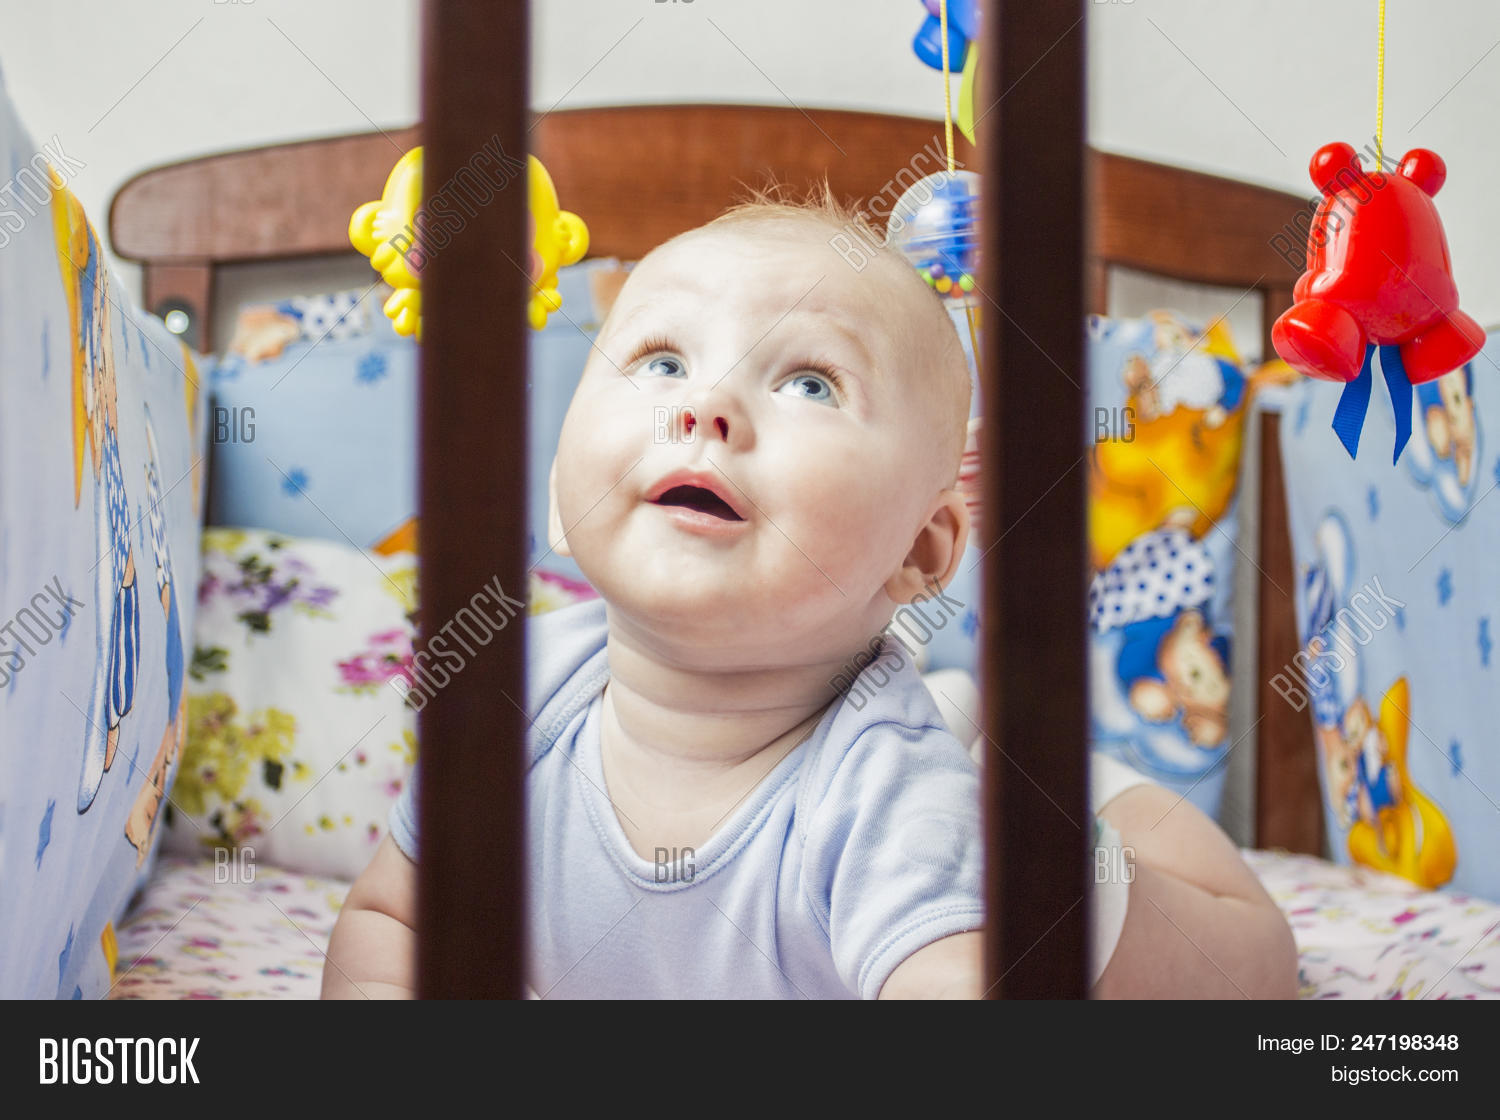 little child very nice image & photo (free trial) | bigstock